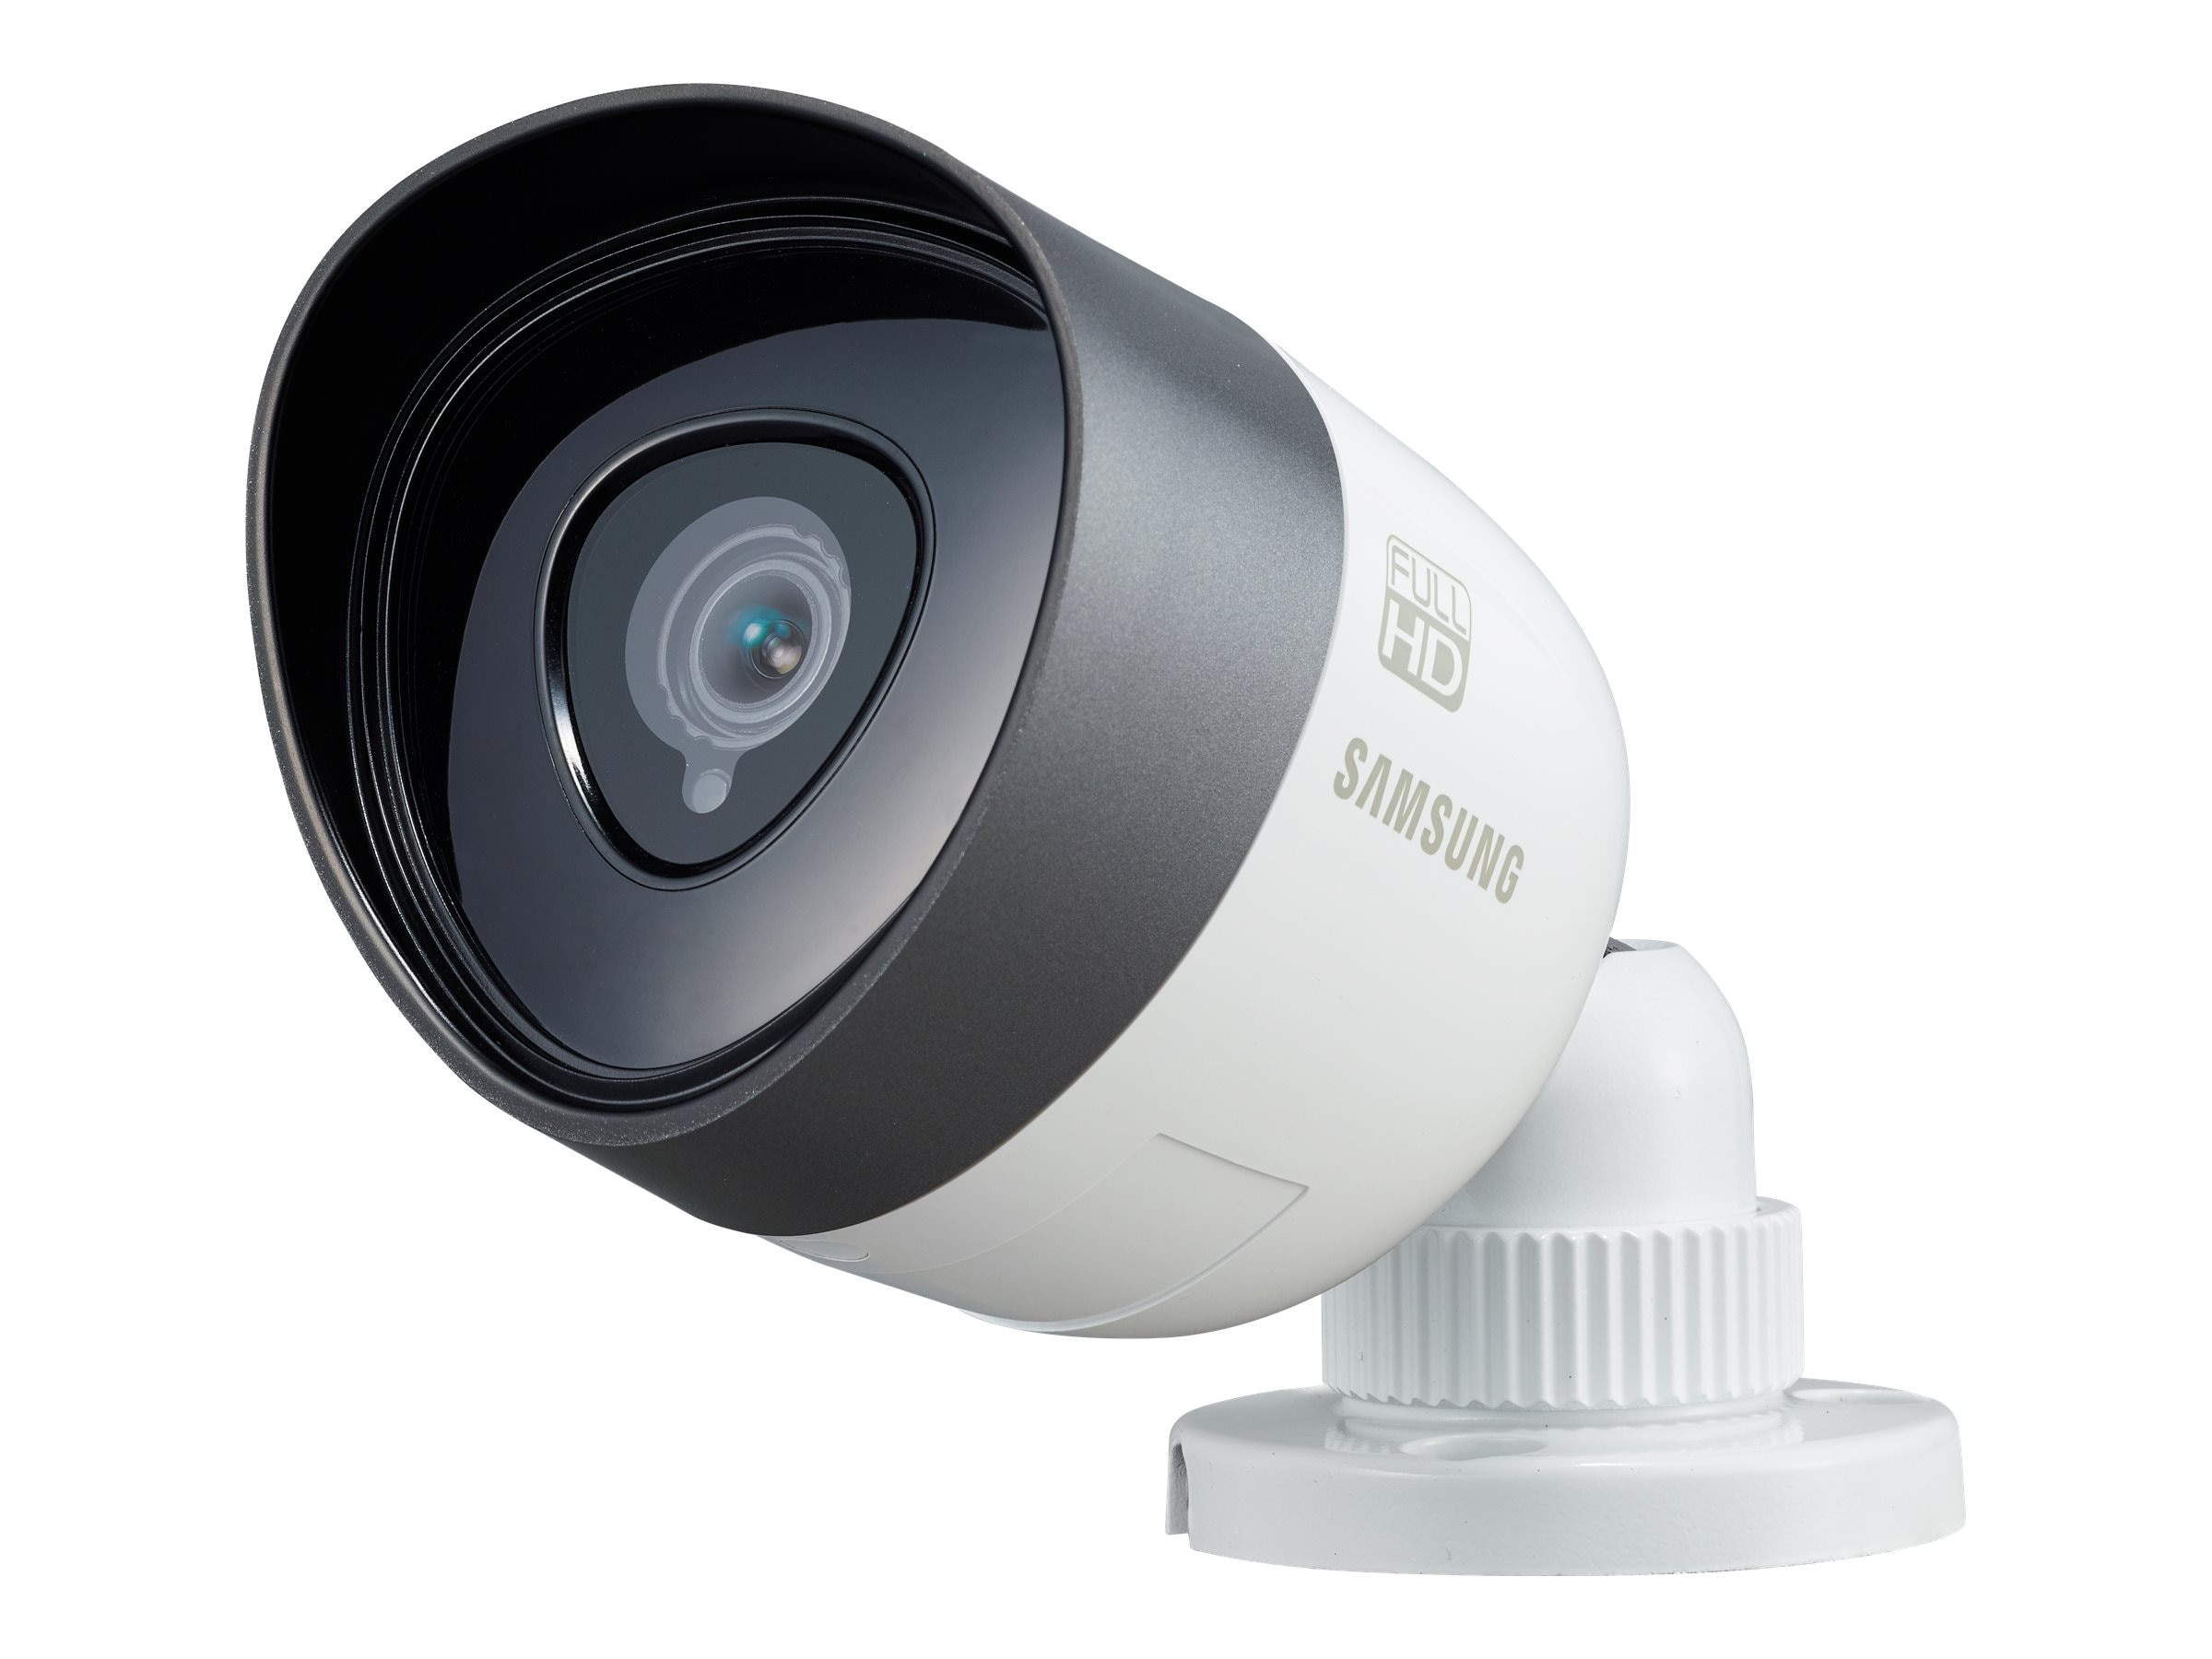 Samsung Weatherproof 1080p High Definition Camera, SDC-9441BC